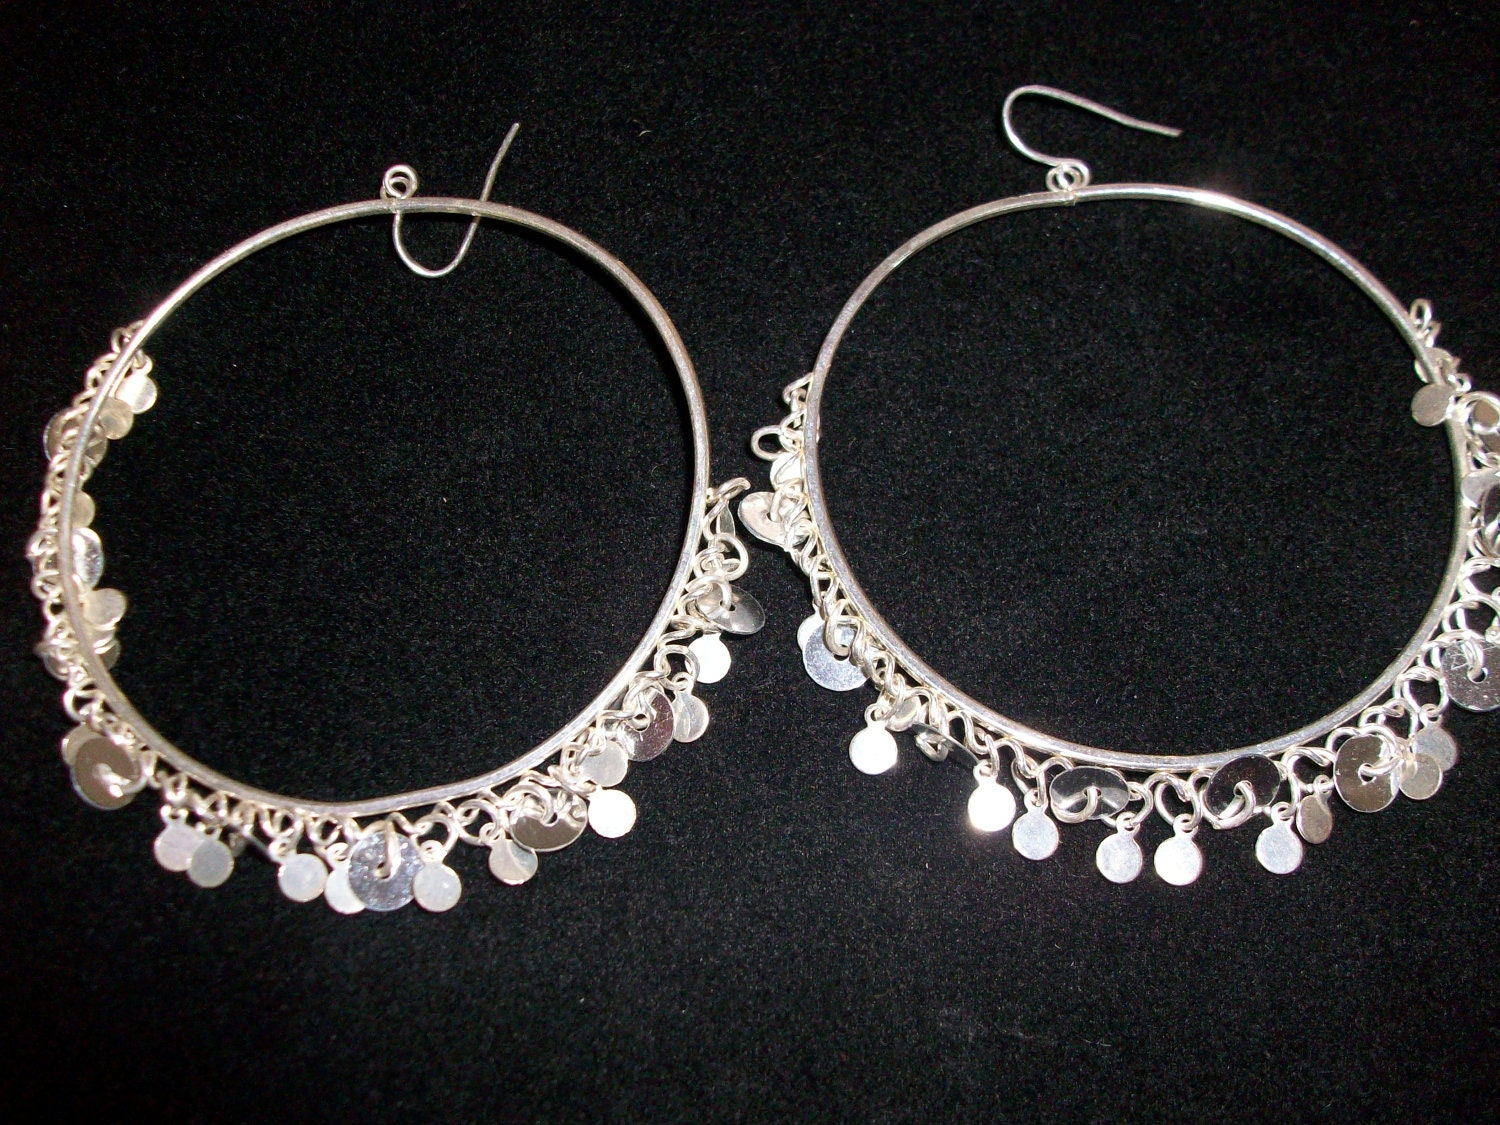 CLEARANCE Dangling Silver Tone Dangling Pierced Earrings